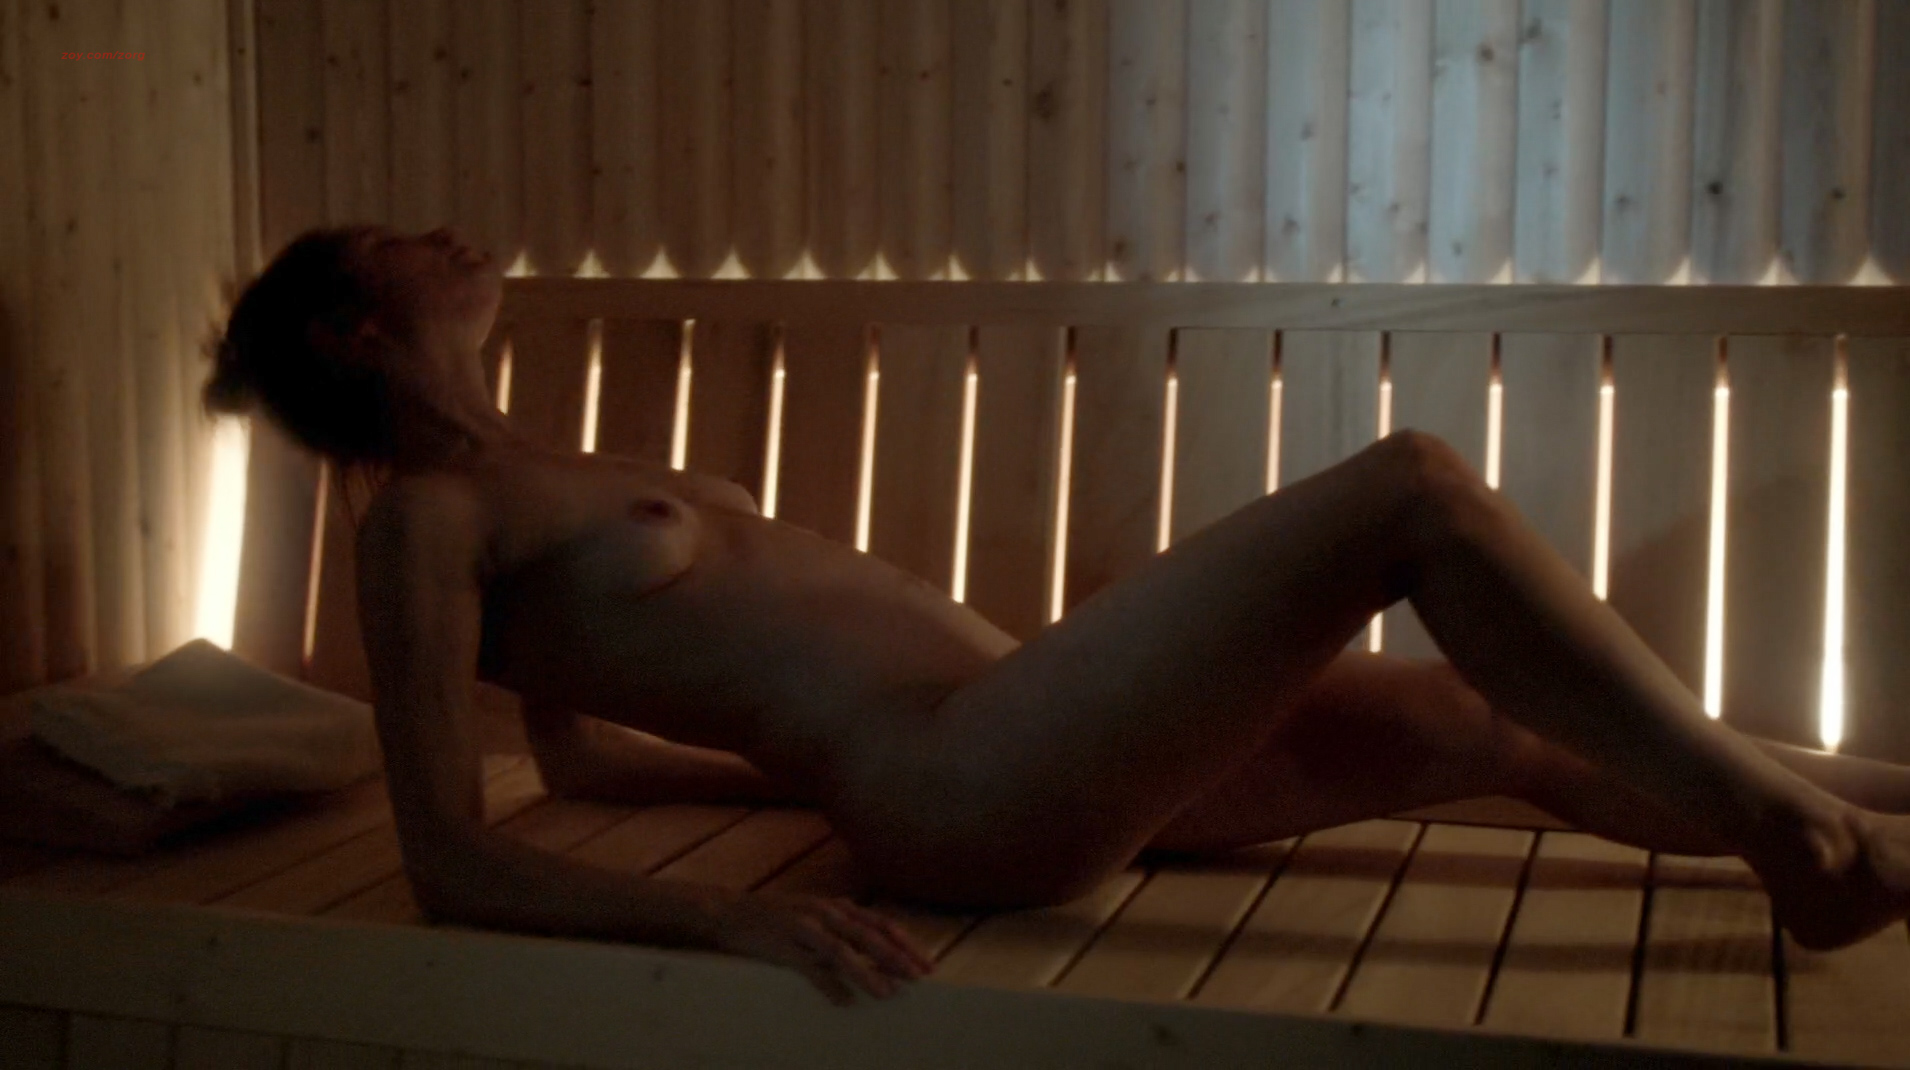 Nude sienna pics guillory